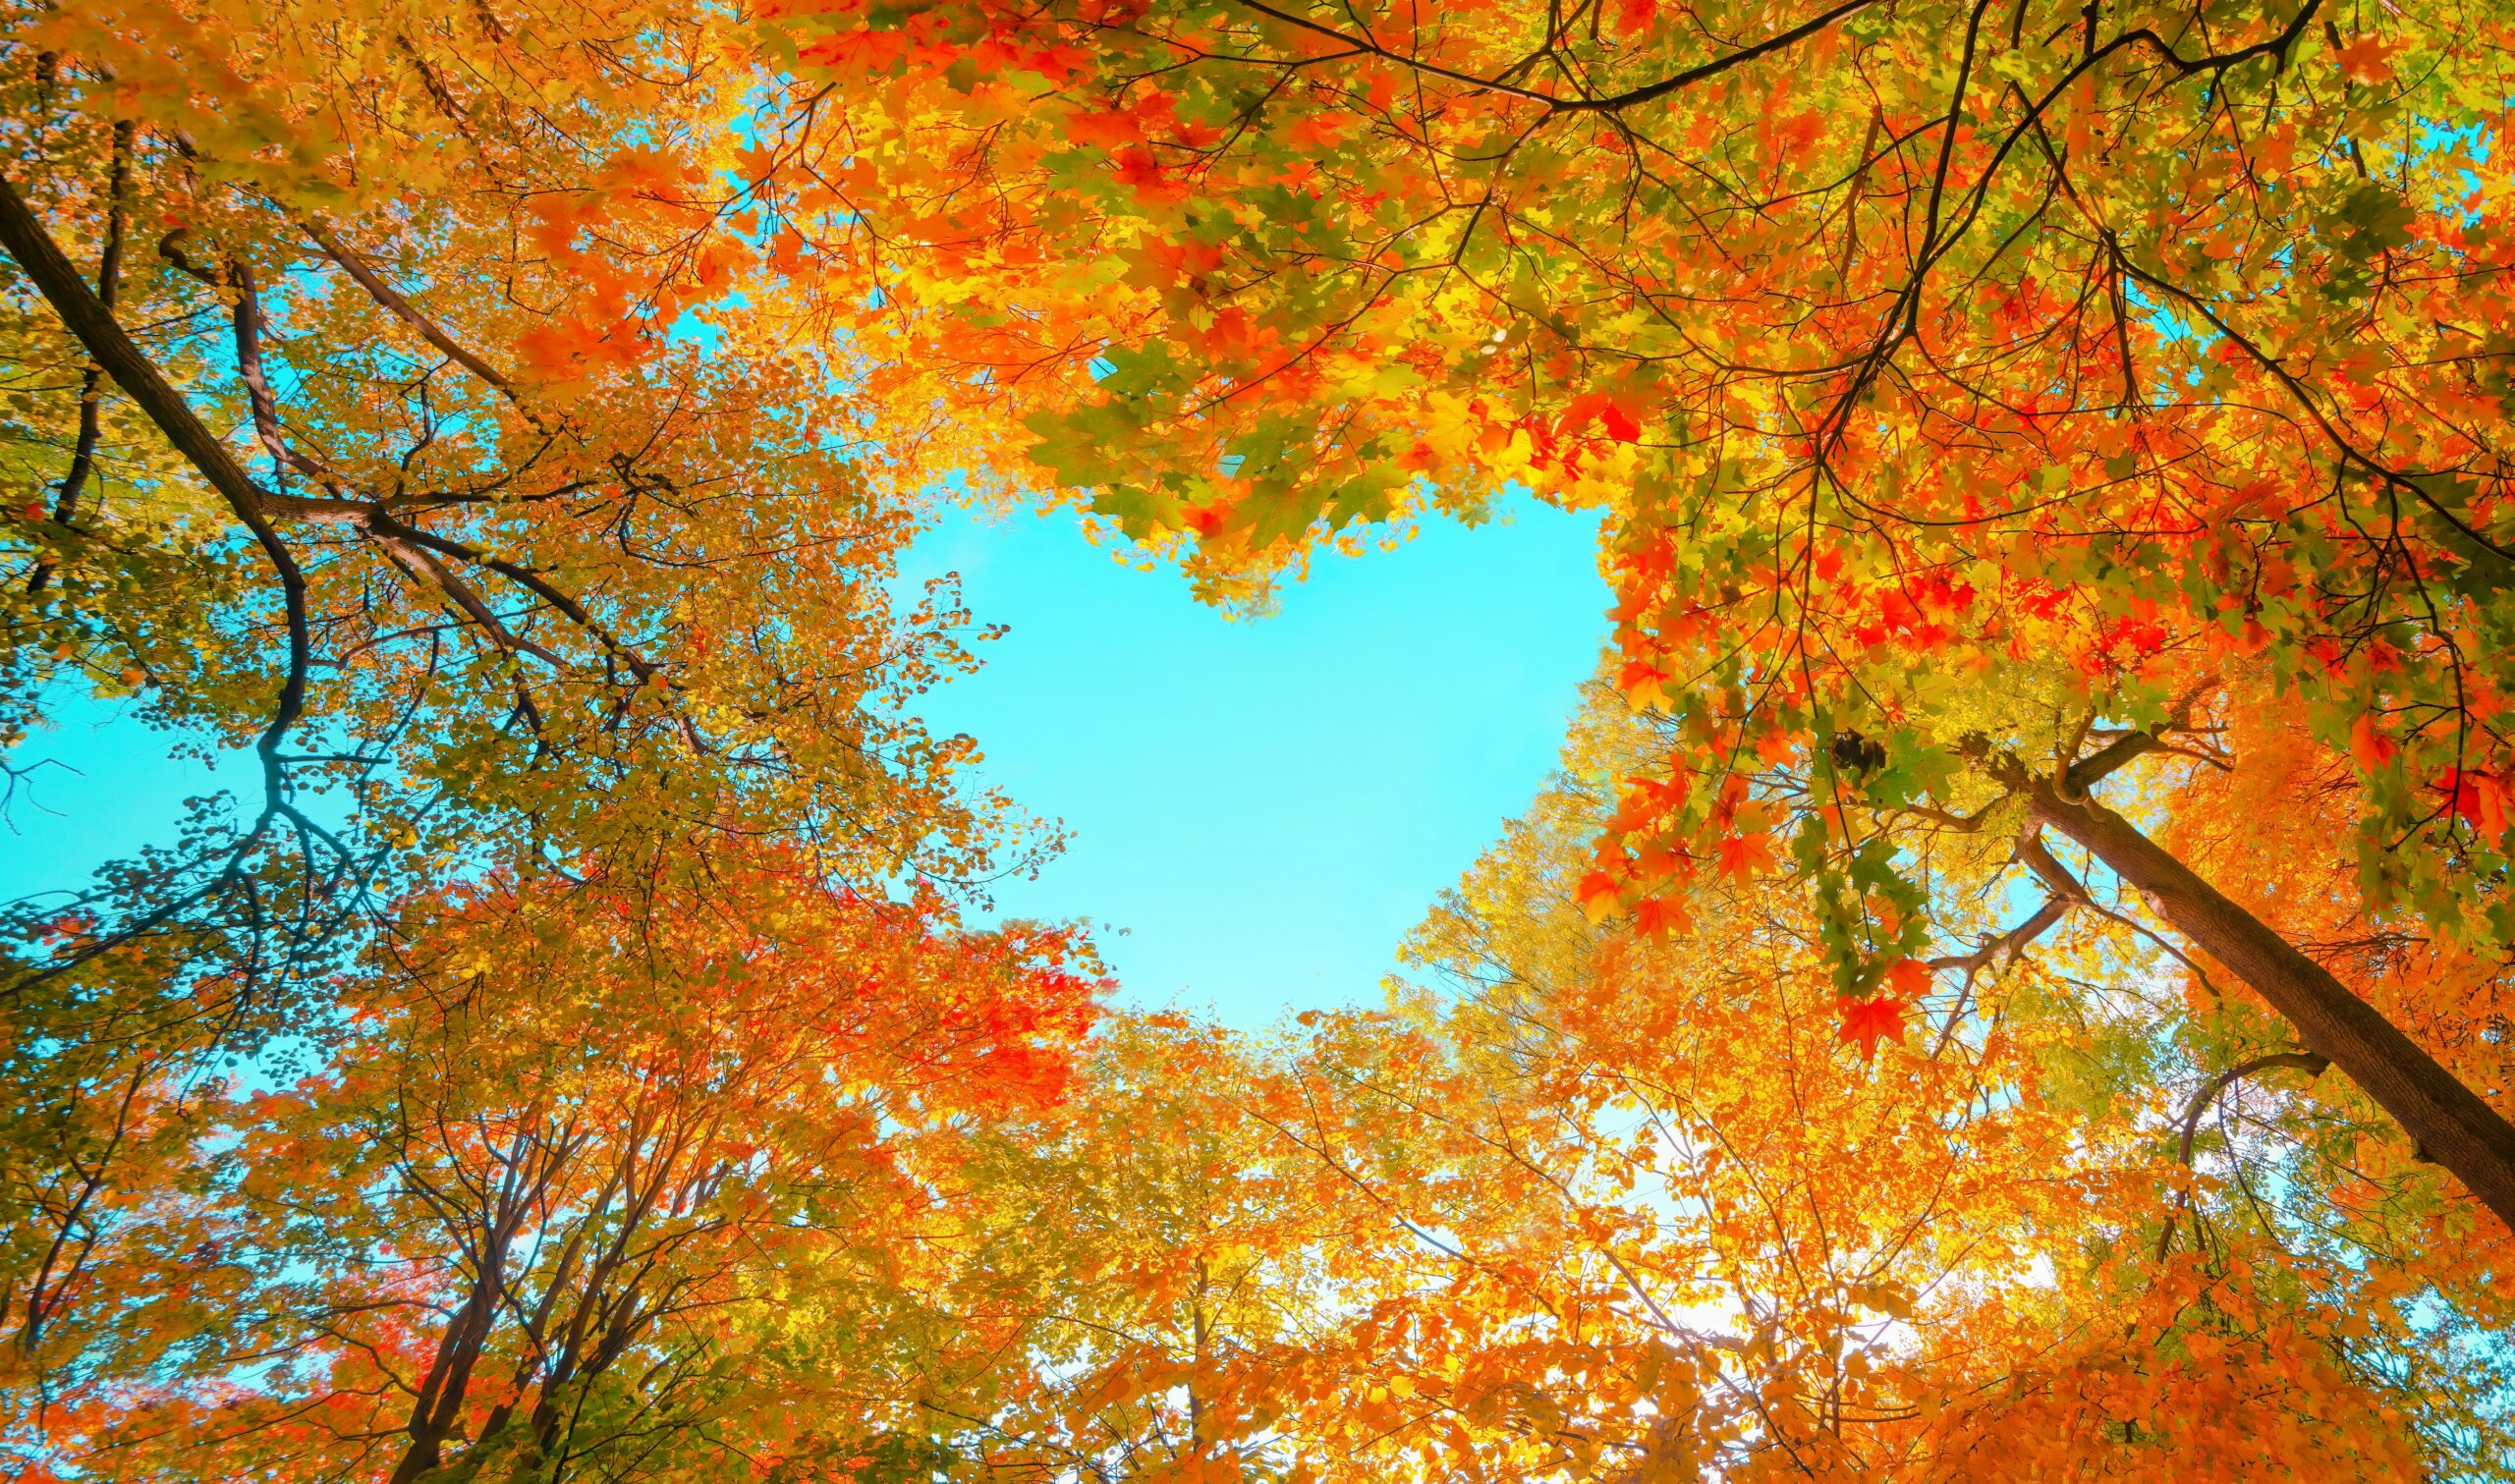 Today is the autumn equinox, which marks the astronomical start of fall in the Northern Hemisphere, and the beginning of spring in the Southern Hemisphere.